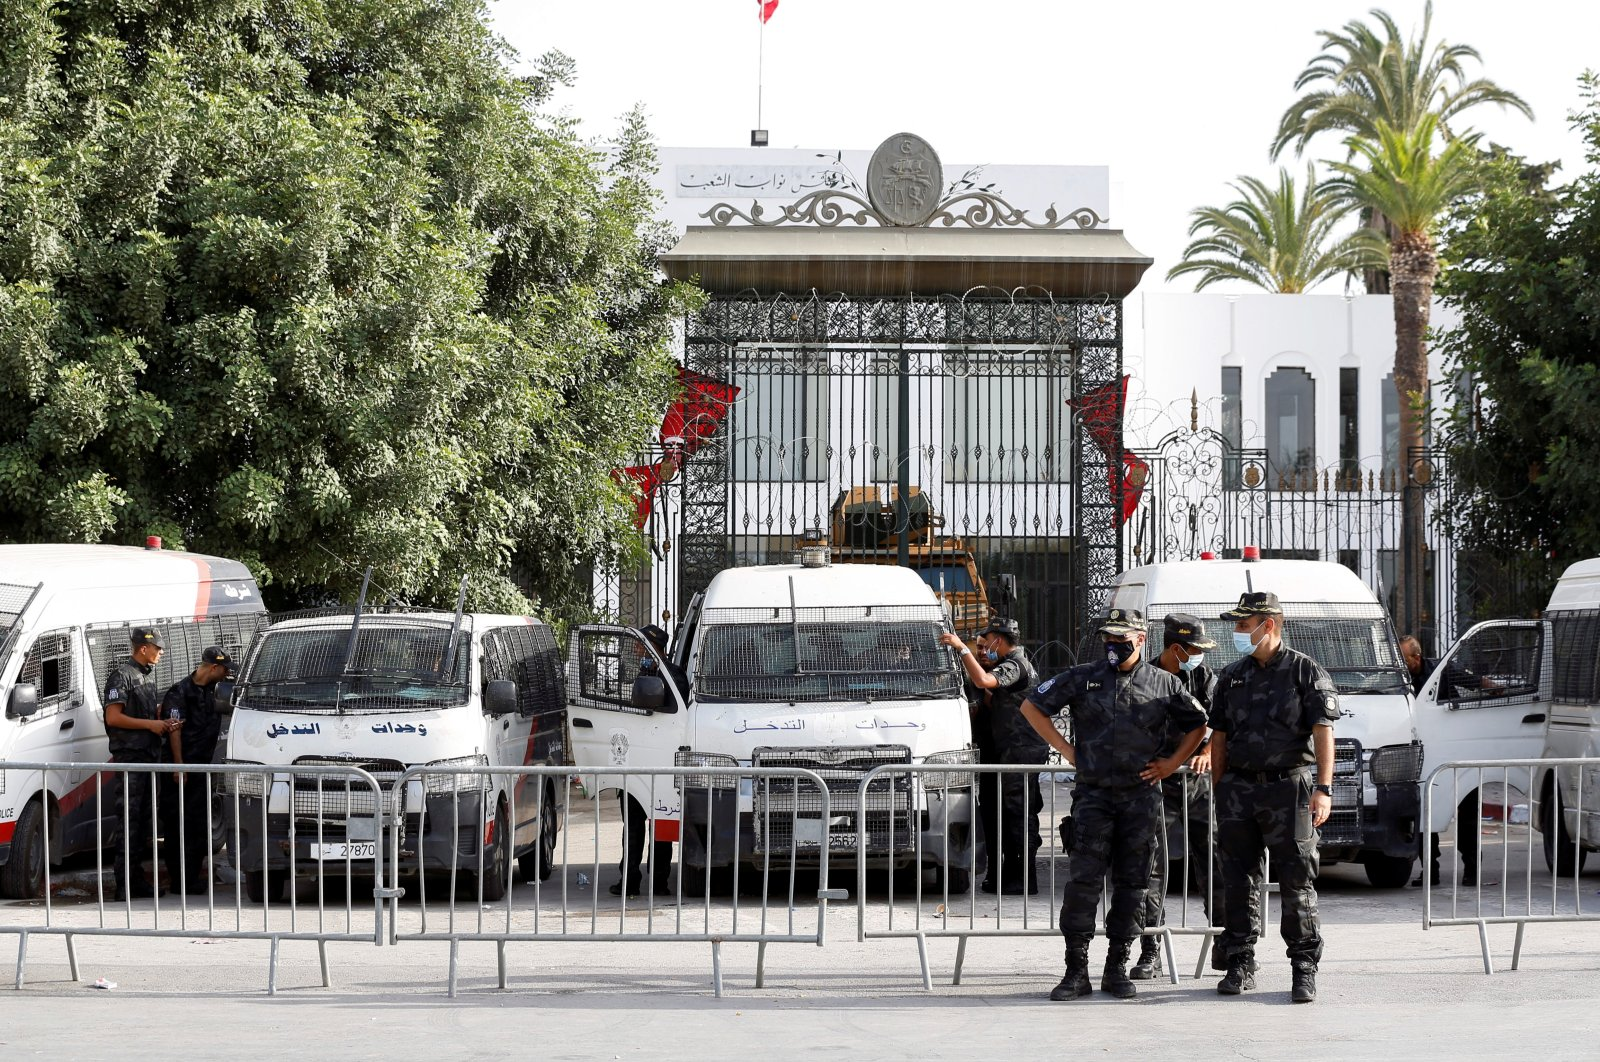 Police officers stand guard outside the parliament building in Tunis, Tunisia, July 27, 2021. (Reuters Photo)